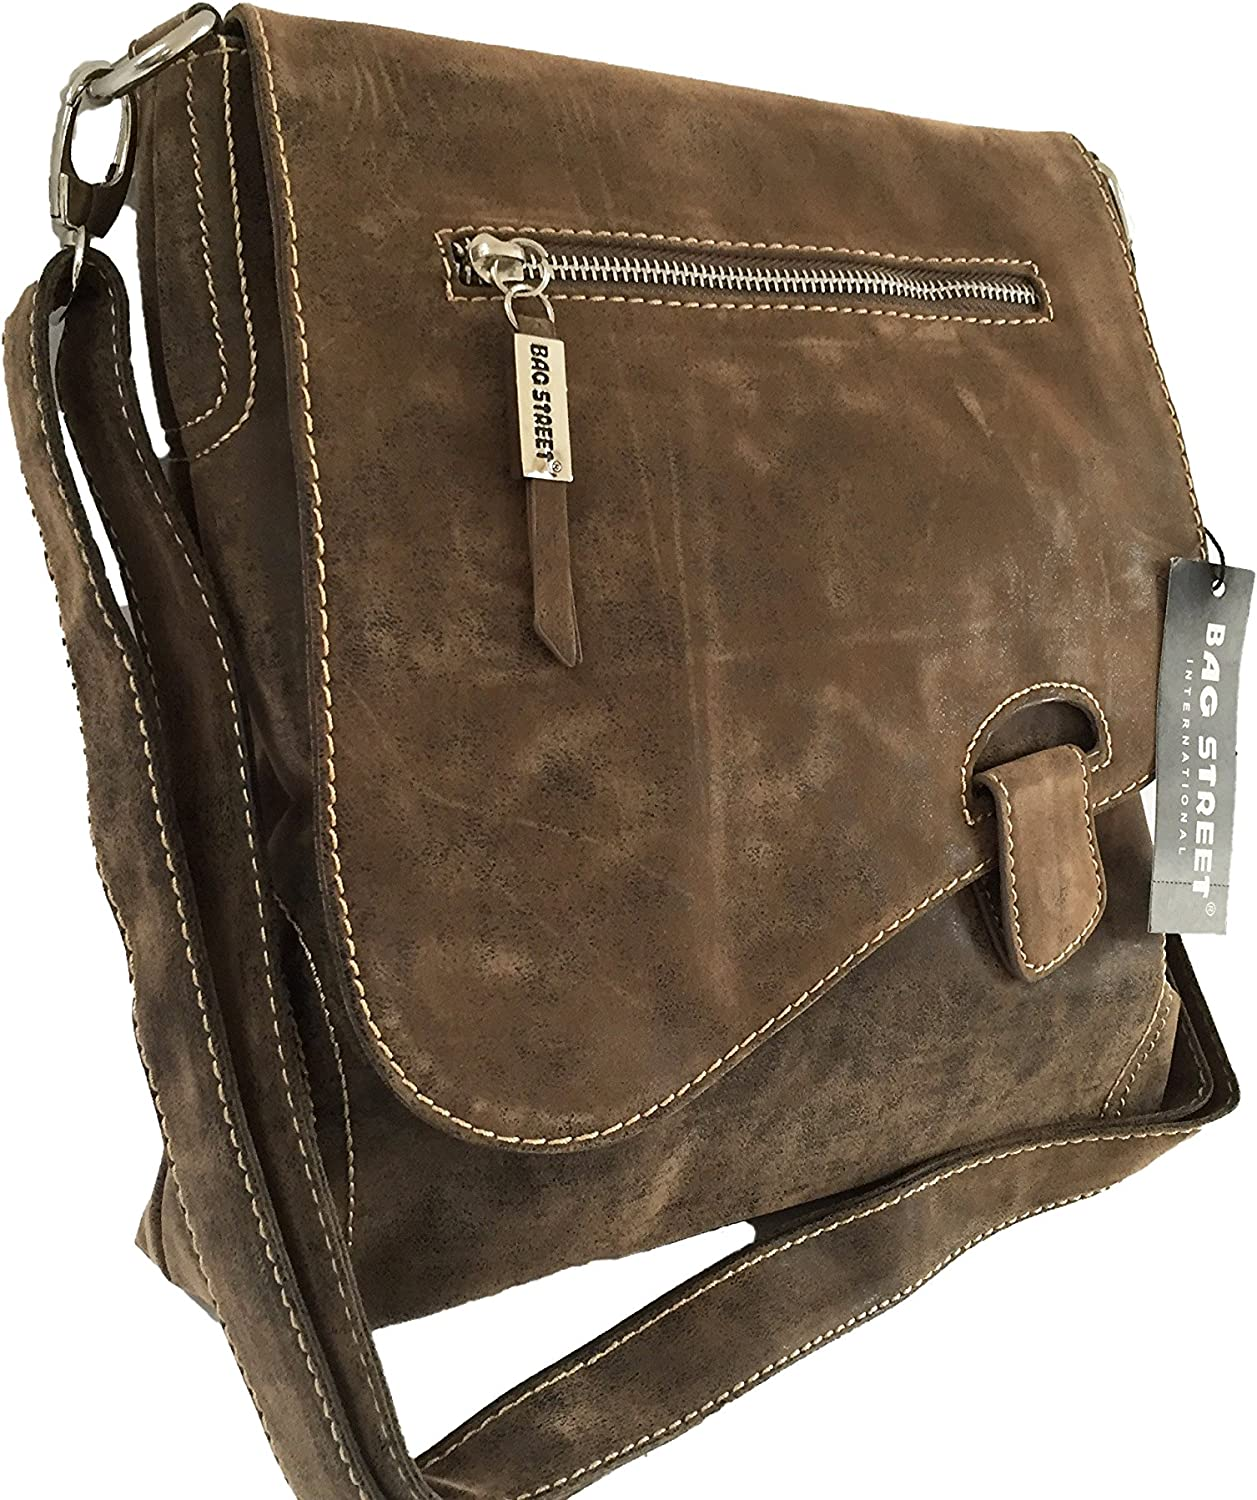 Bag Street Sac /à main en daim Marron 3416